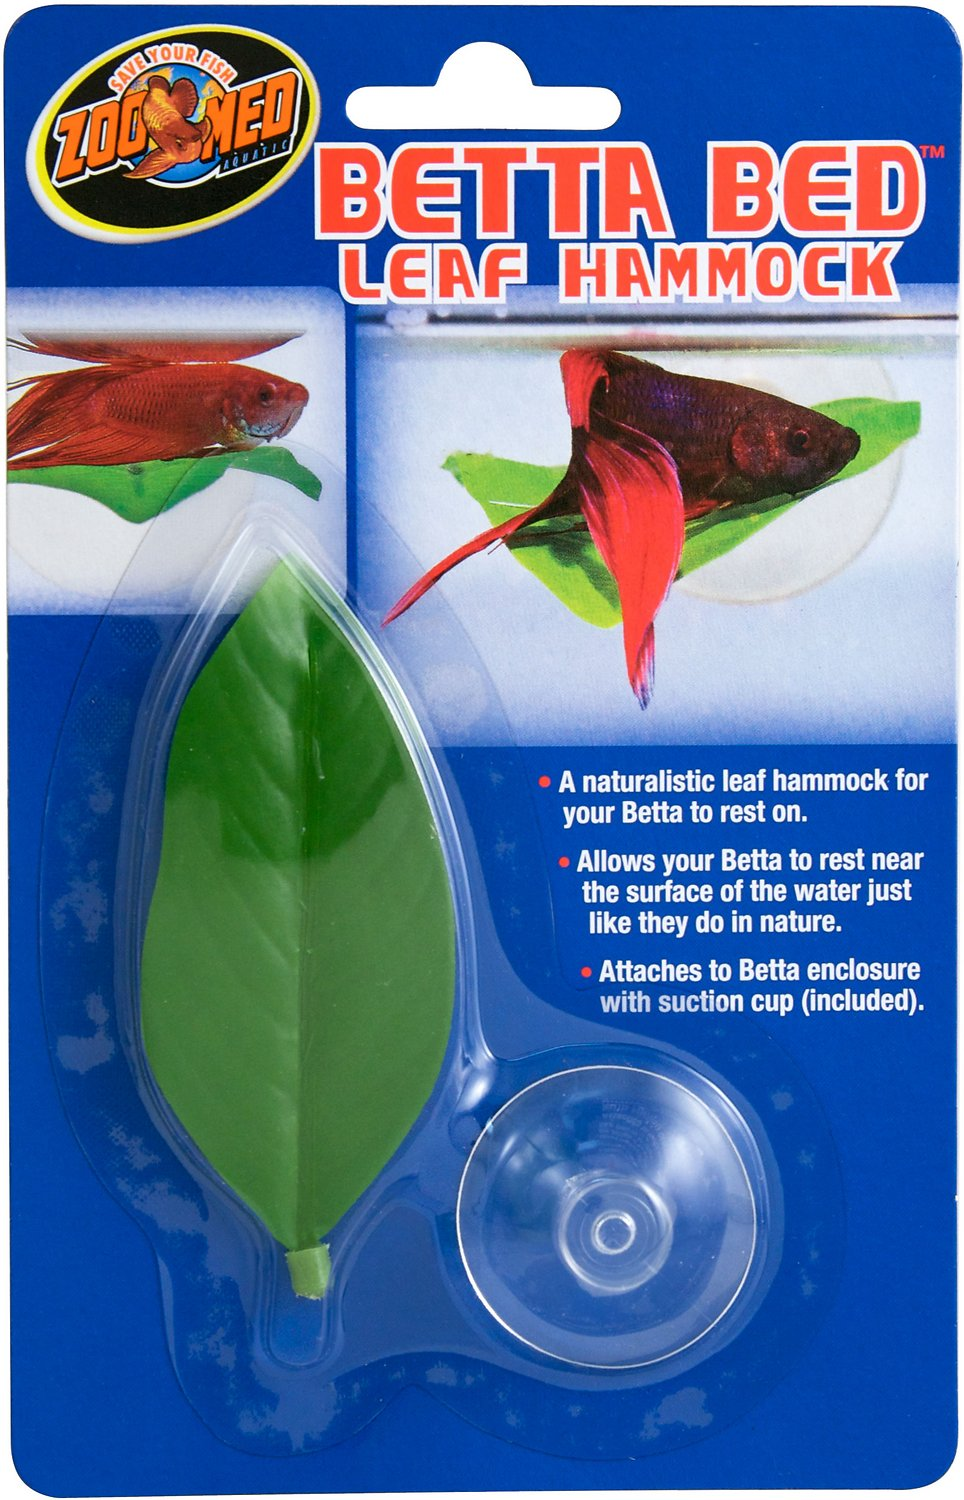 Zoo Med Betta Bed Leaf Hammock (Weights: 0.8 ounces) Image